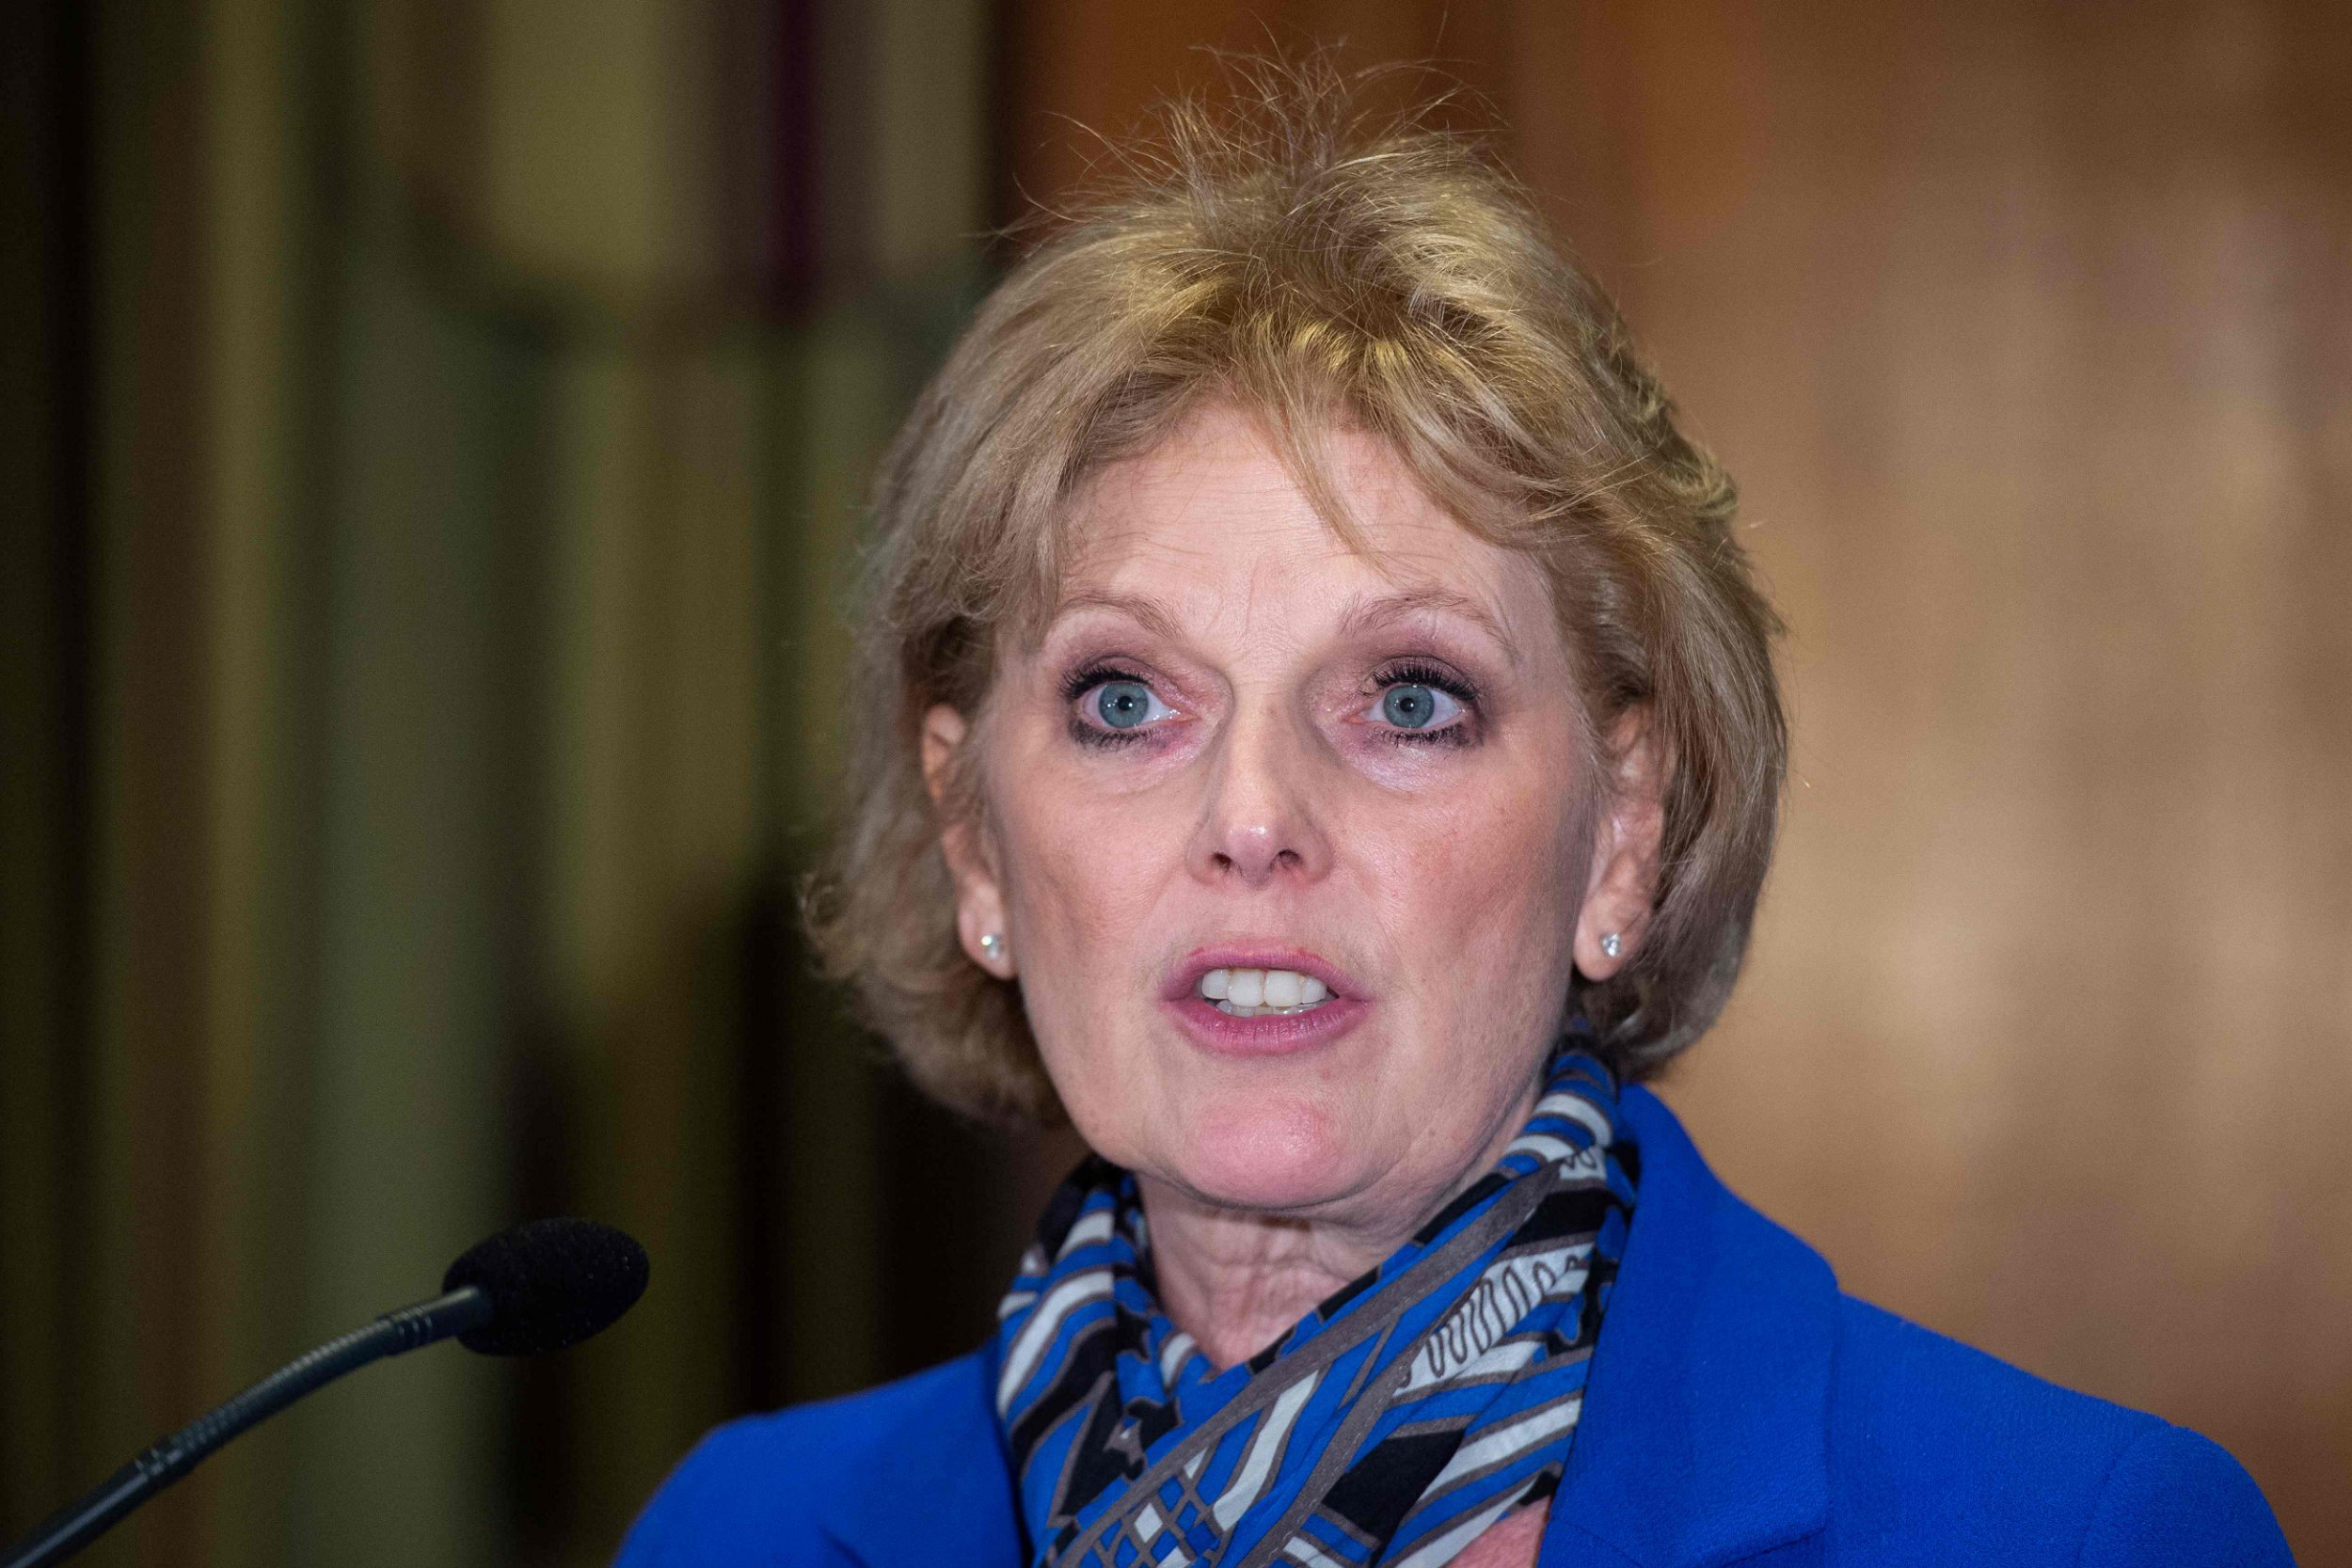 """Former Conservative Party and now an Independent MP Anna Soubry speaks at a press conference in central London on February 20, 2019 following her resignation from the Conservative Party in a joint letter with two other colleagues. - Three MPs, Anna Soubry, Heidi Allen and Sarah Wollaston, quit Britain's governing Conservatives on Wednesday over Brexit, saying the issue had """"re-defined"""" the party and was """"undoing all the efforts to modernise it"""". The trio added that they planned to sit in parliament alongside eight former Labour lawmakers who, also citing their opposition to Brexit, resigned from the main opposition party this week to form the new Independent Group. (Photo by Niklas HALLE'N / AFP)NIKLAS HALLE'N/AFP/Getty Images"""